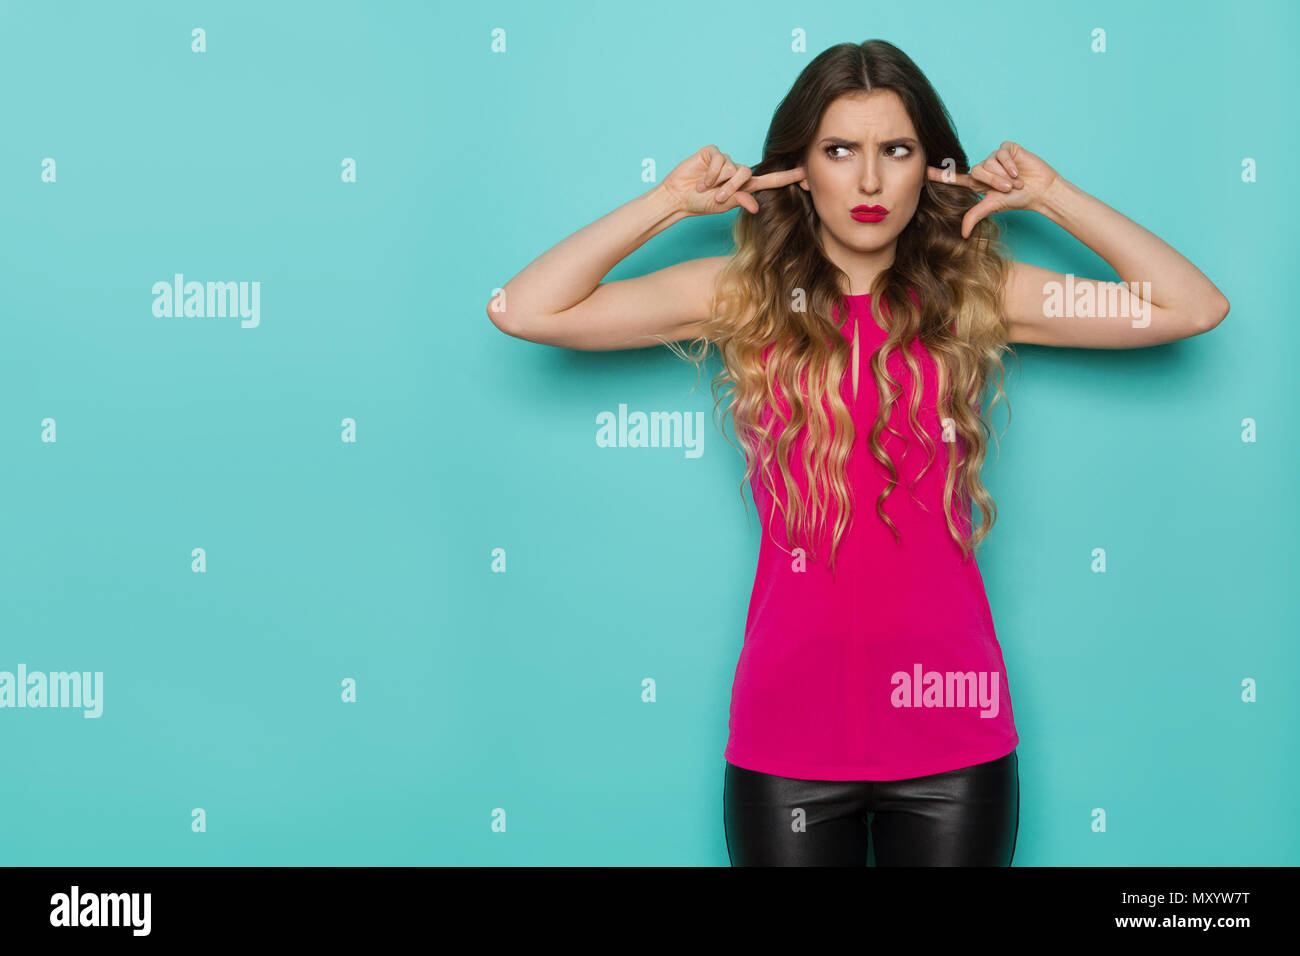 Beautiful grimacing young woman in pink top closes her ears with fingers and looks away. Three quarter length studio shot on turquoise background. - Stock Image